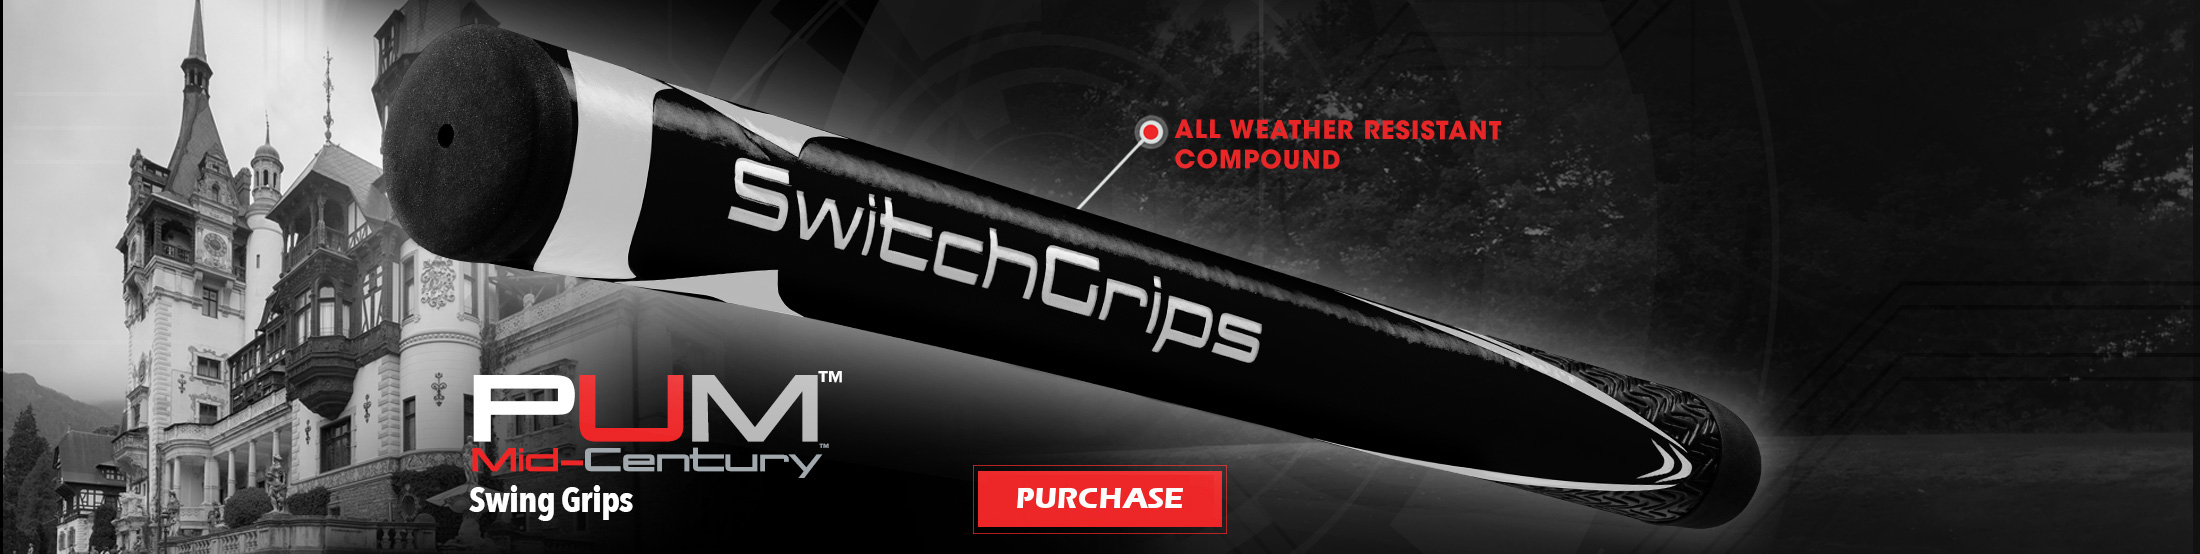 SwitchGrips - Sweden - Golf Swing Grips